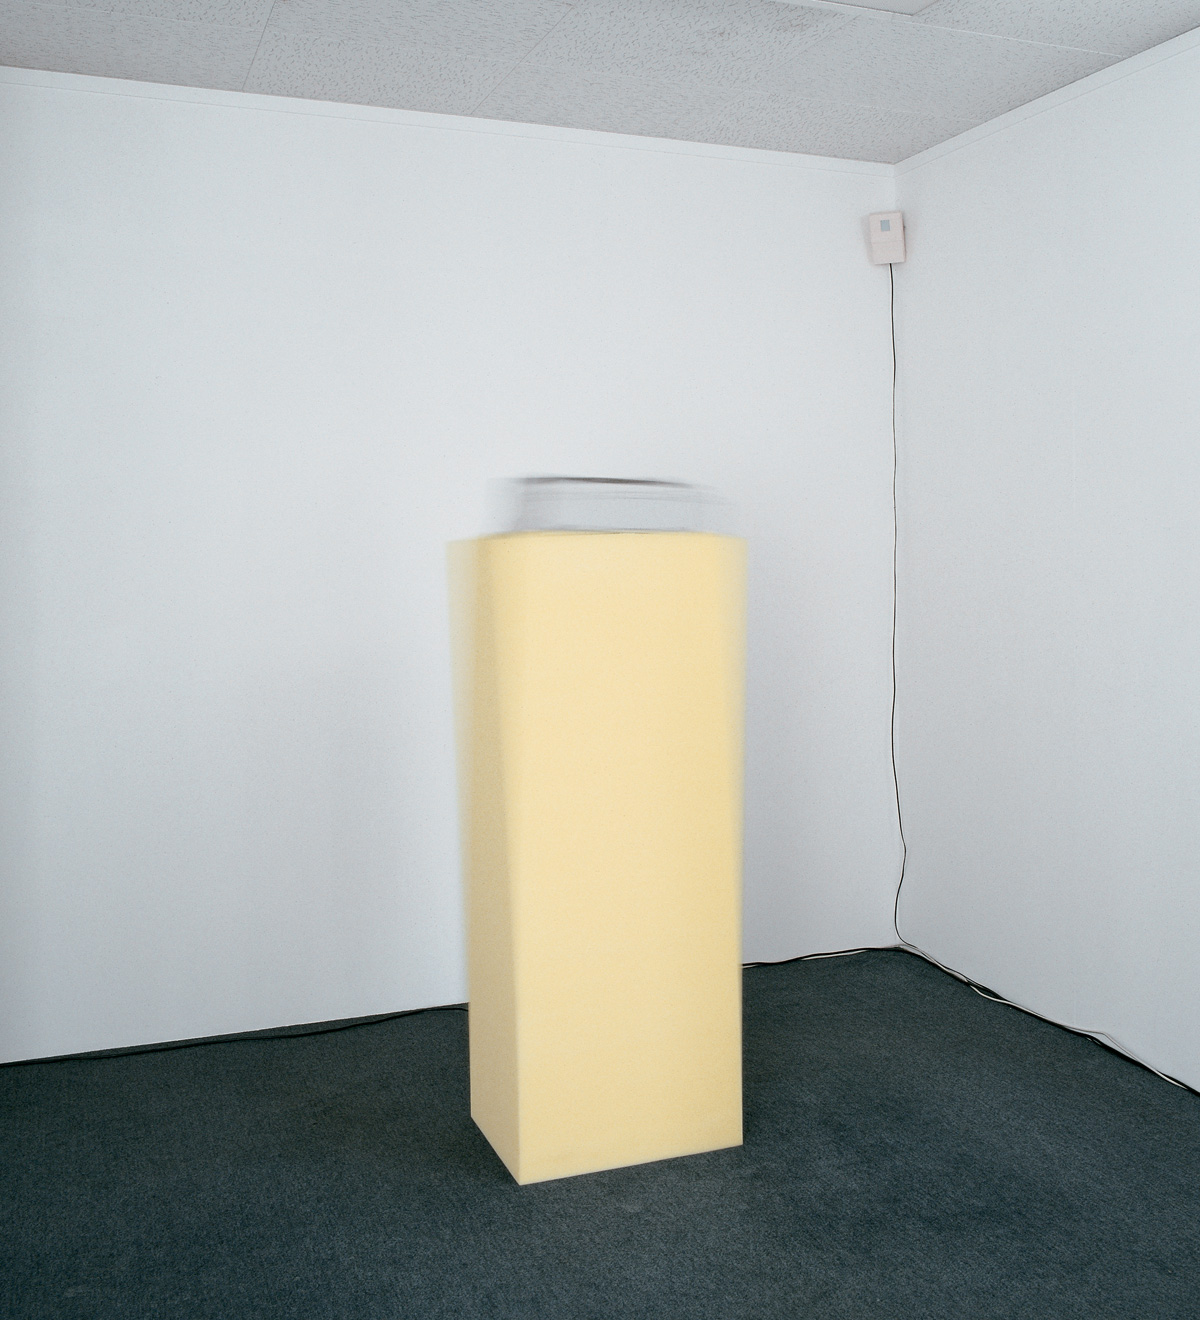 Hard on soft, 1993 – ordinateur, imprimante à aiguilles, socle en mousse computer, dot matrix printer, foam base – 145 x 50 x 40 cm.